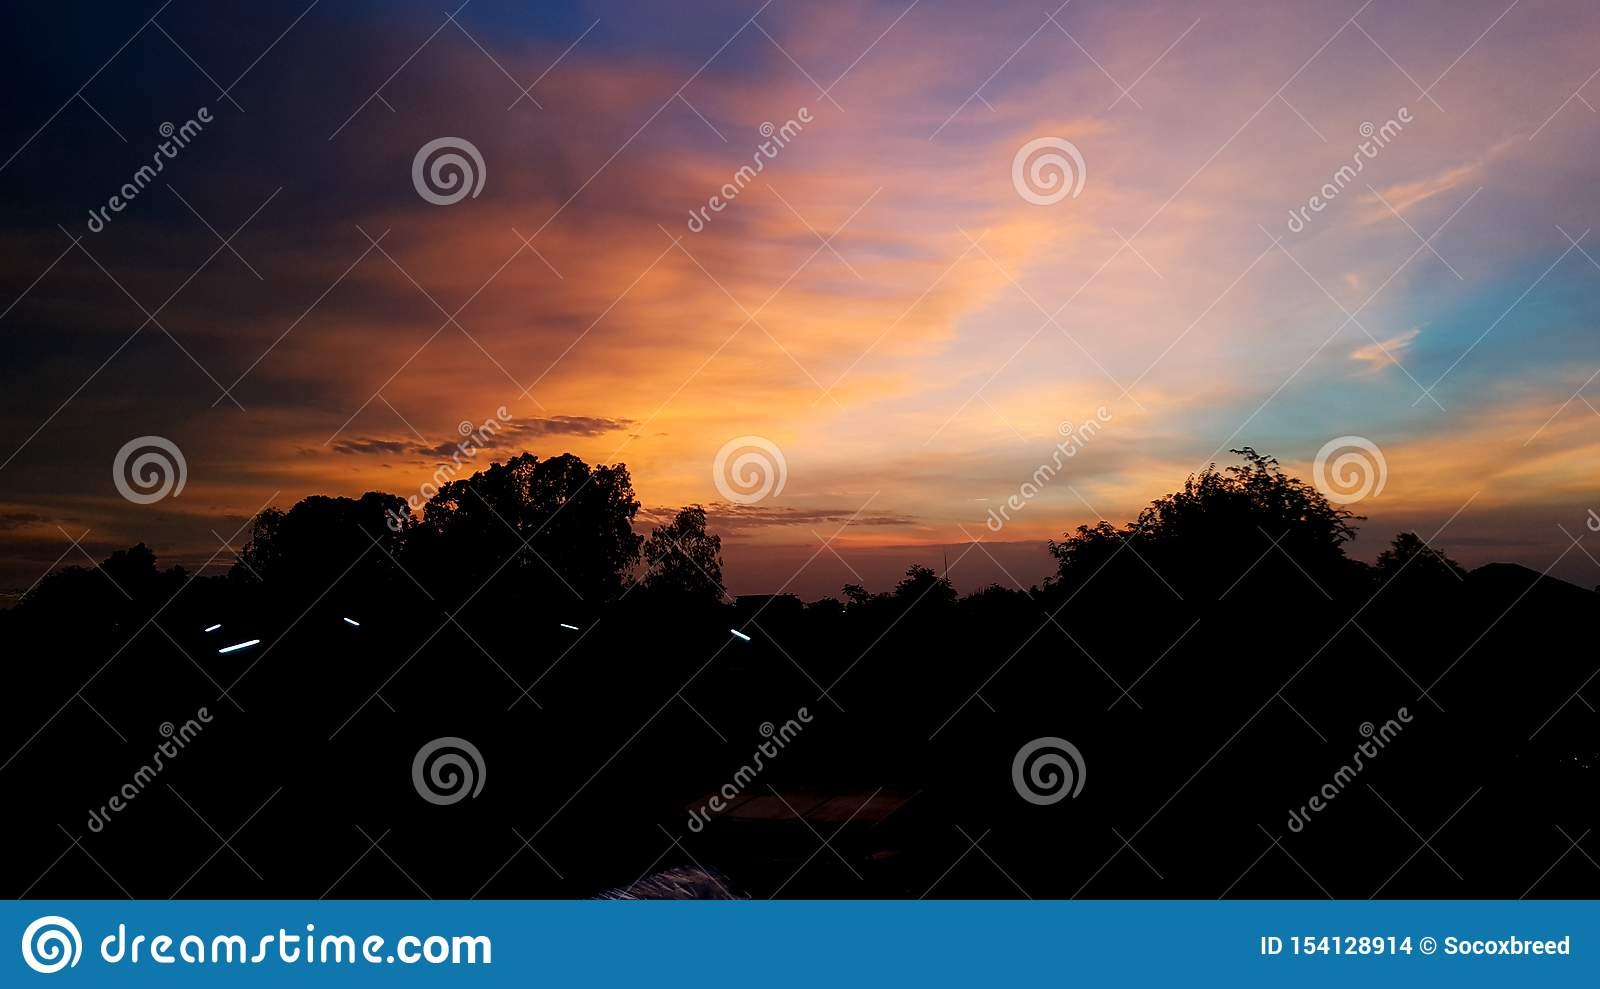 Twilight sky and cloud at evening background